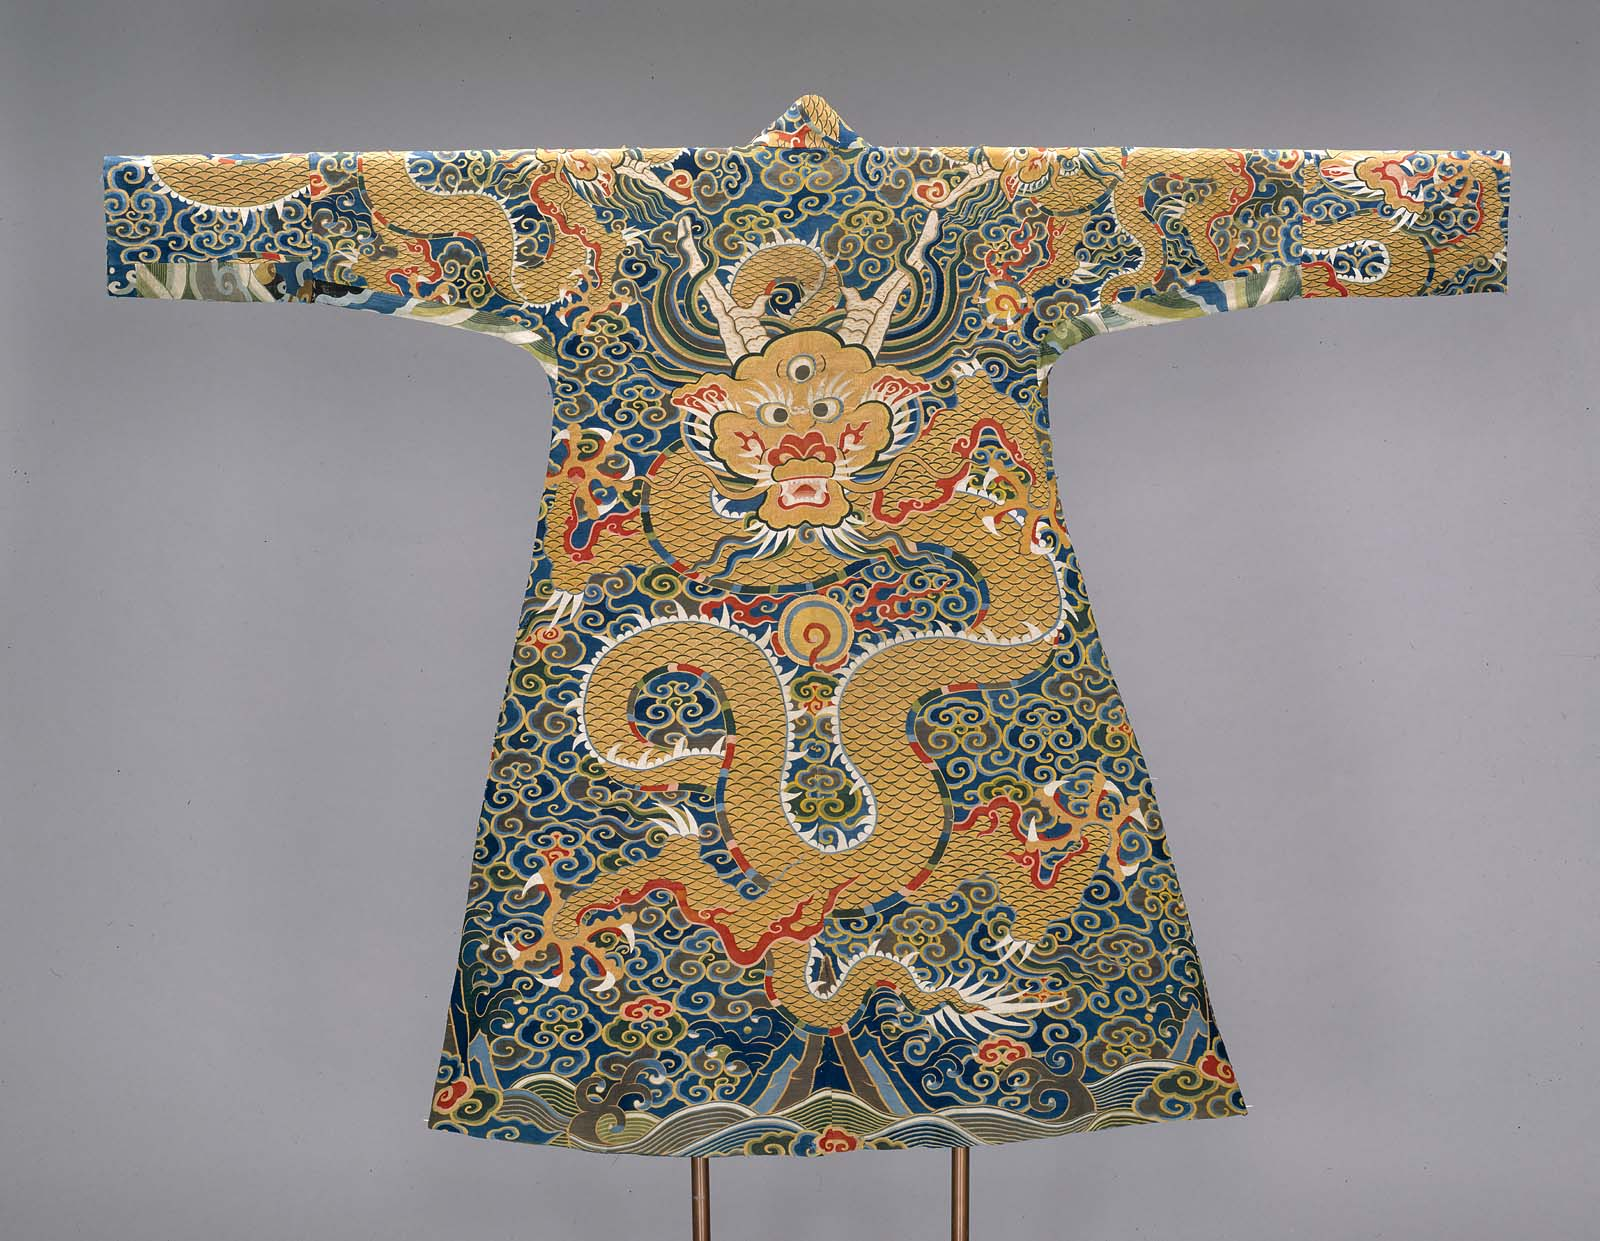 Extrem MFA Images: Asian Robes & Costumes | Museum of Fine Arts, Boston SM82